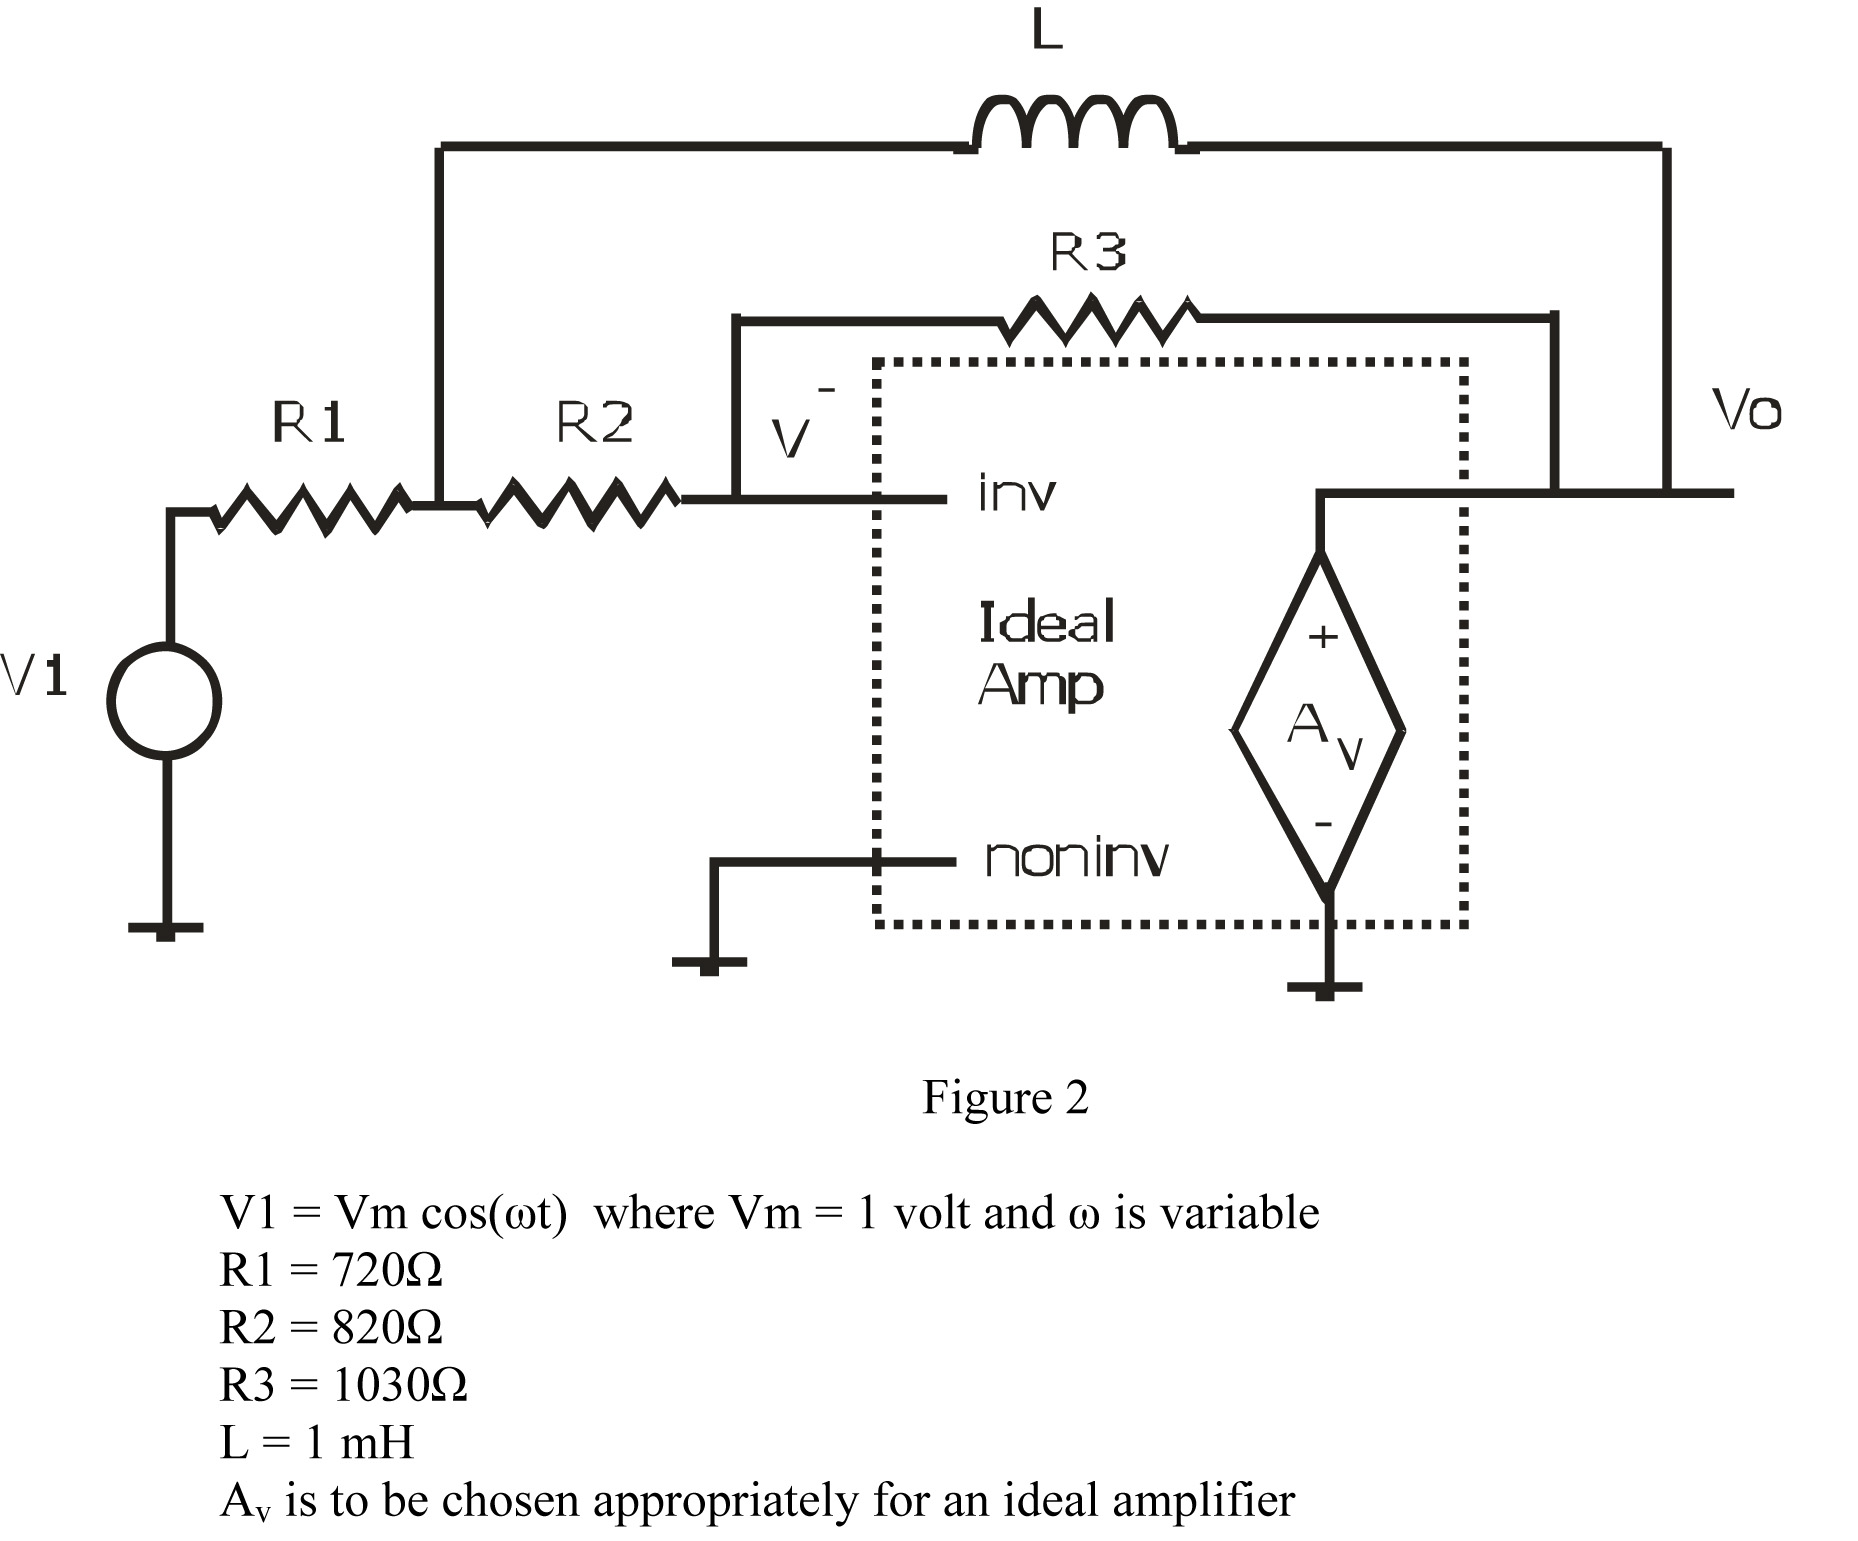 Figure 2 shows the small signal model of an amplif